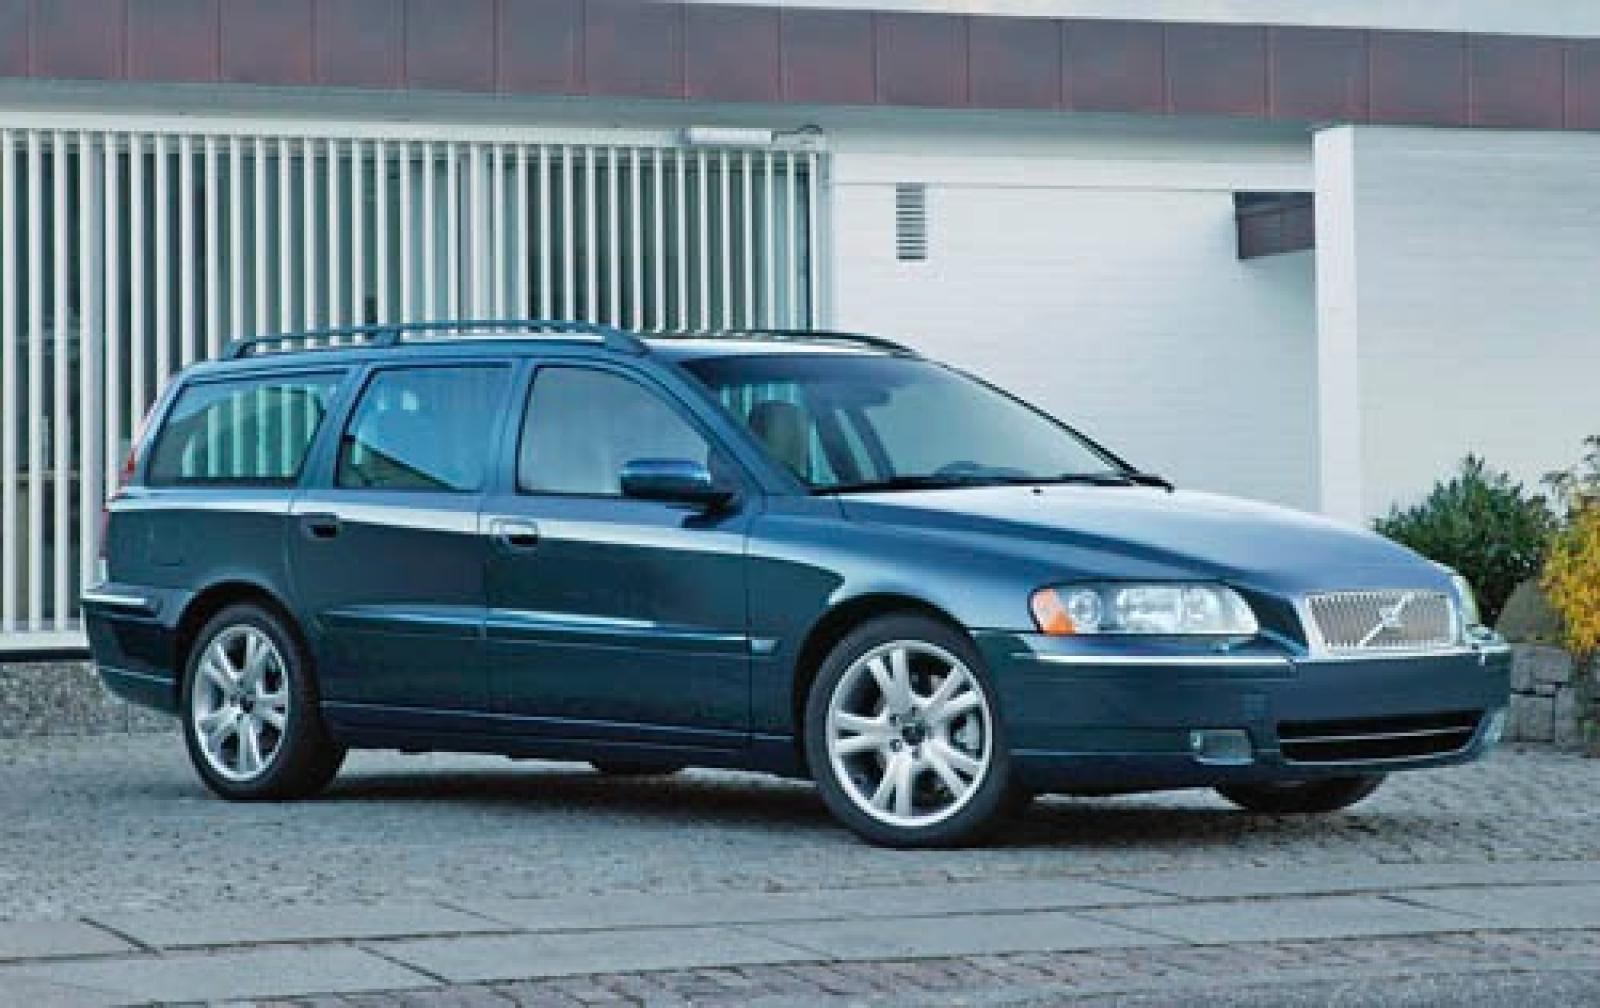 2005 volvo v70 information and photos zombiedrive. Black Bedroom Furniture Sets. Home Design Ideas